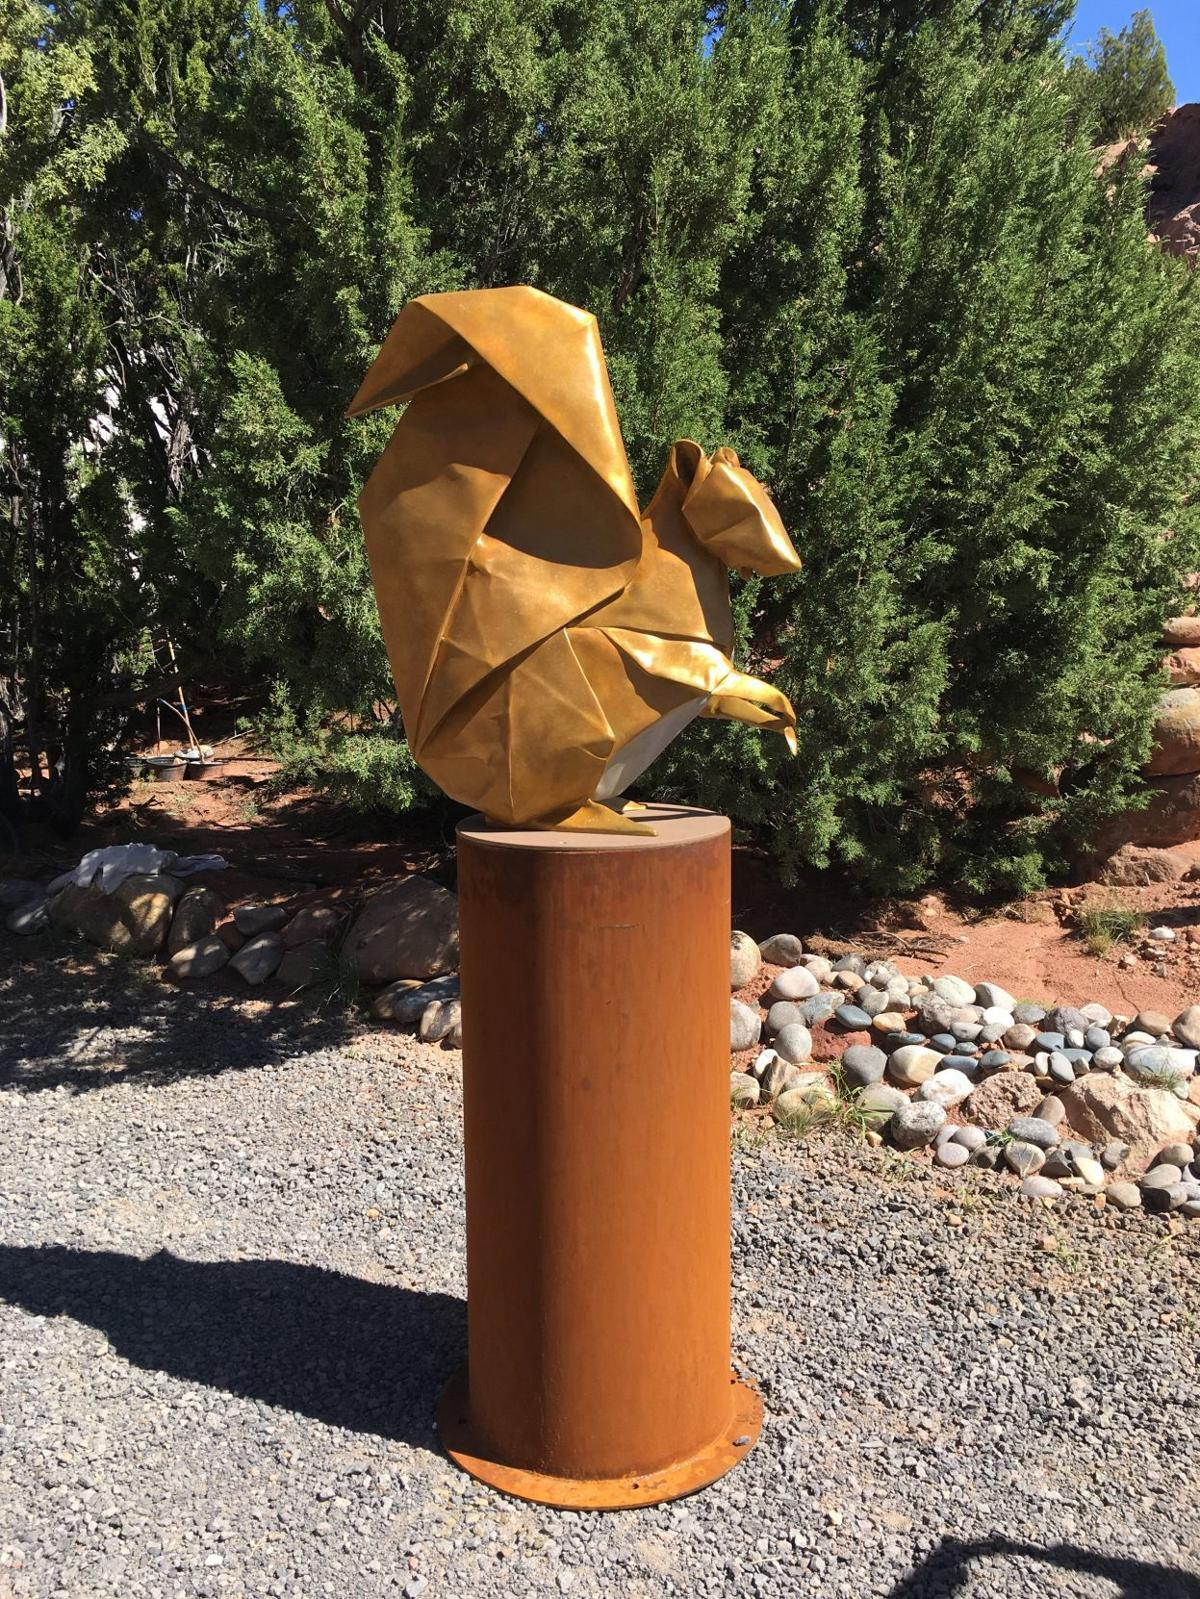 Artist Kevin Box brings origami-inspired sculptures to Lewis Ginter ...